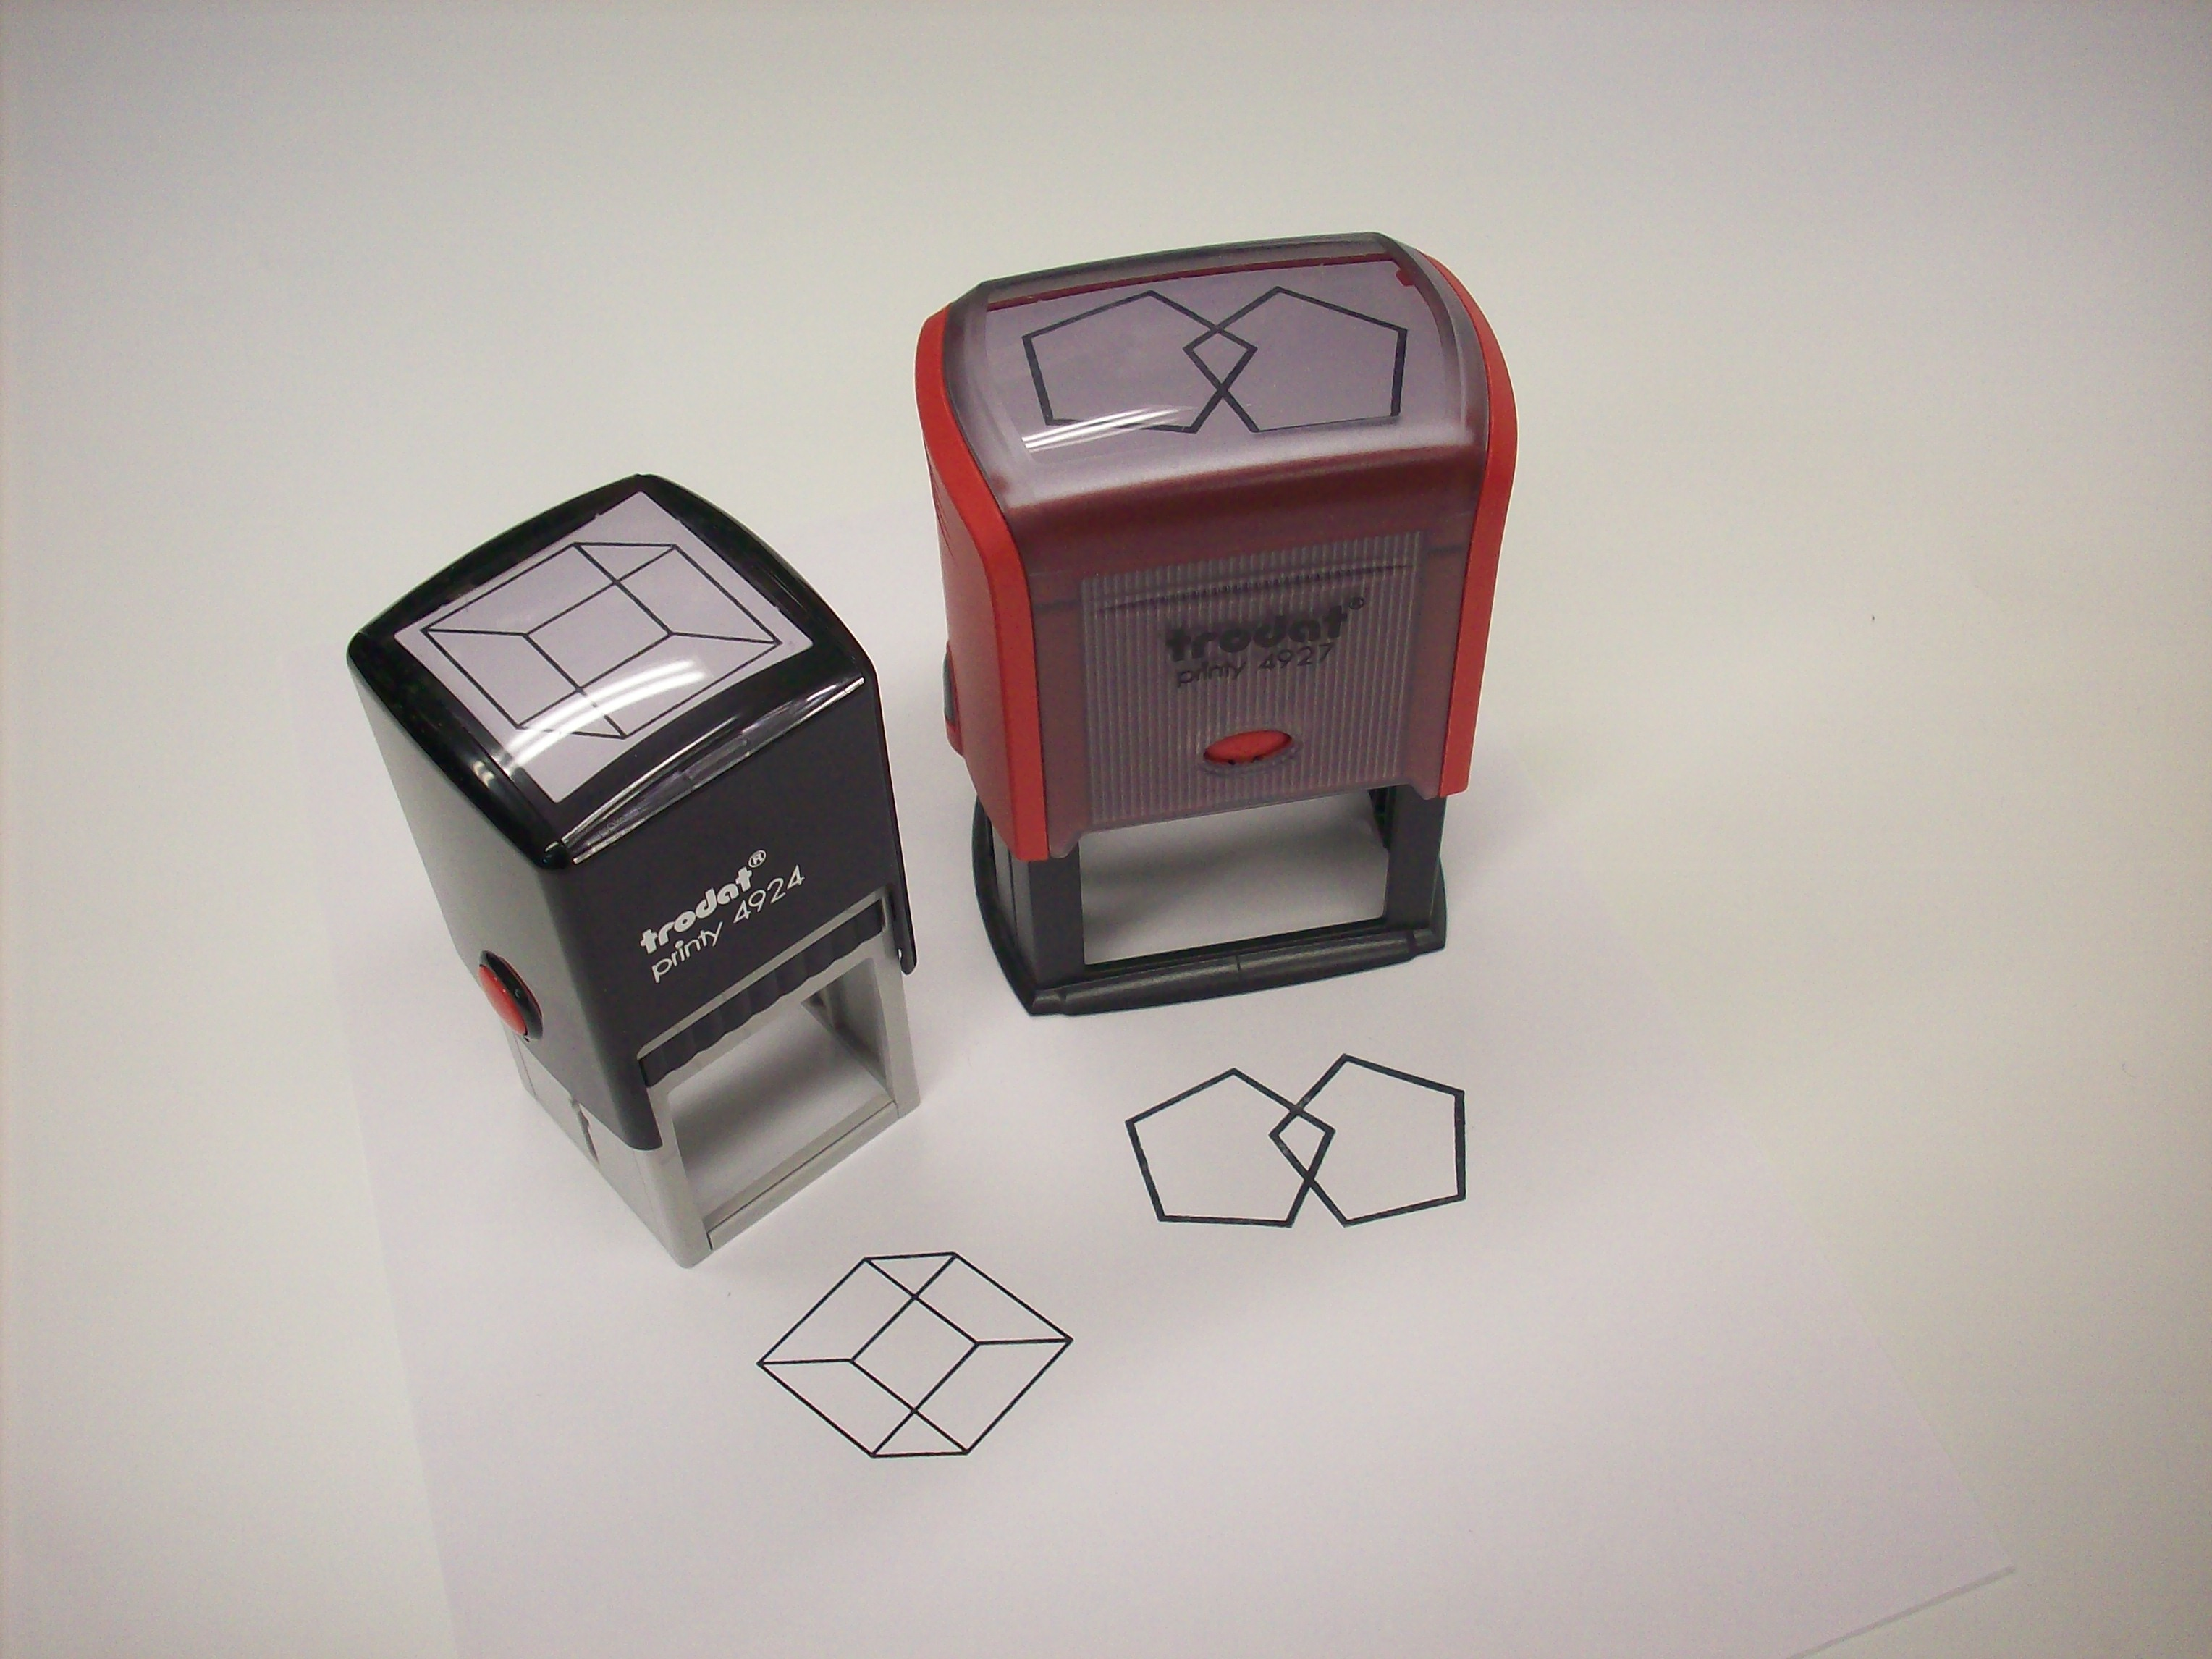 Rubber Stamp for Cognitive Testing Cube Design